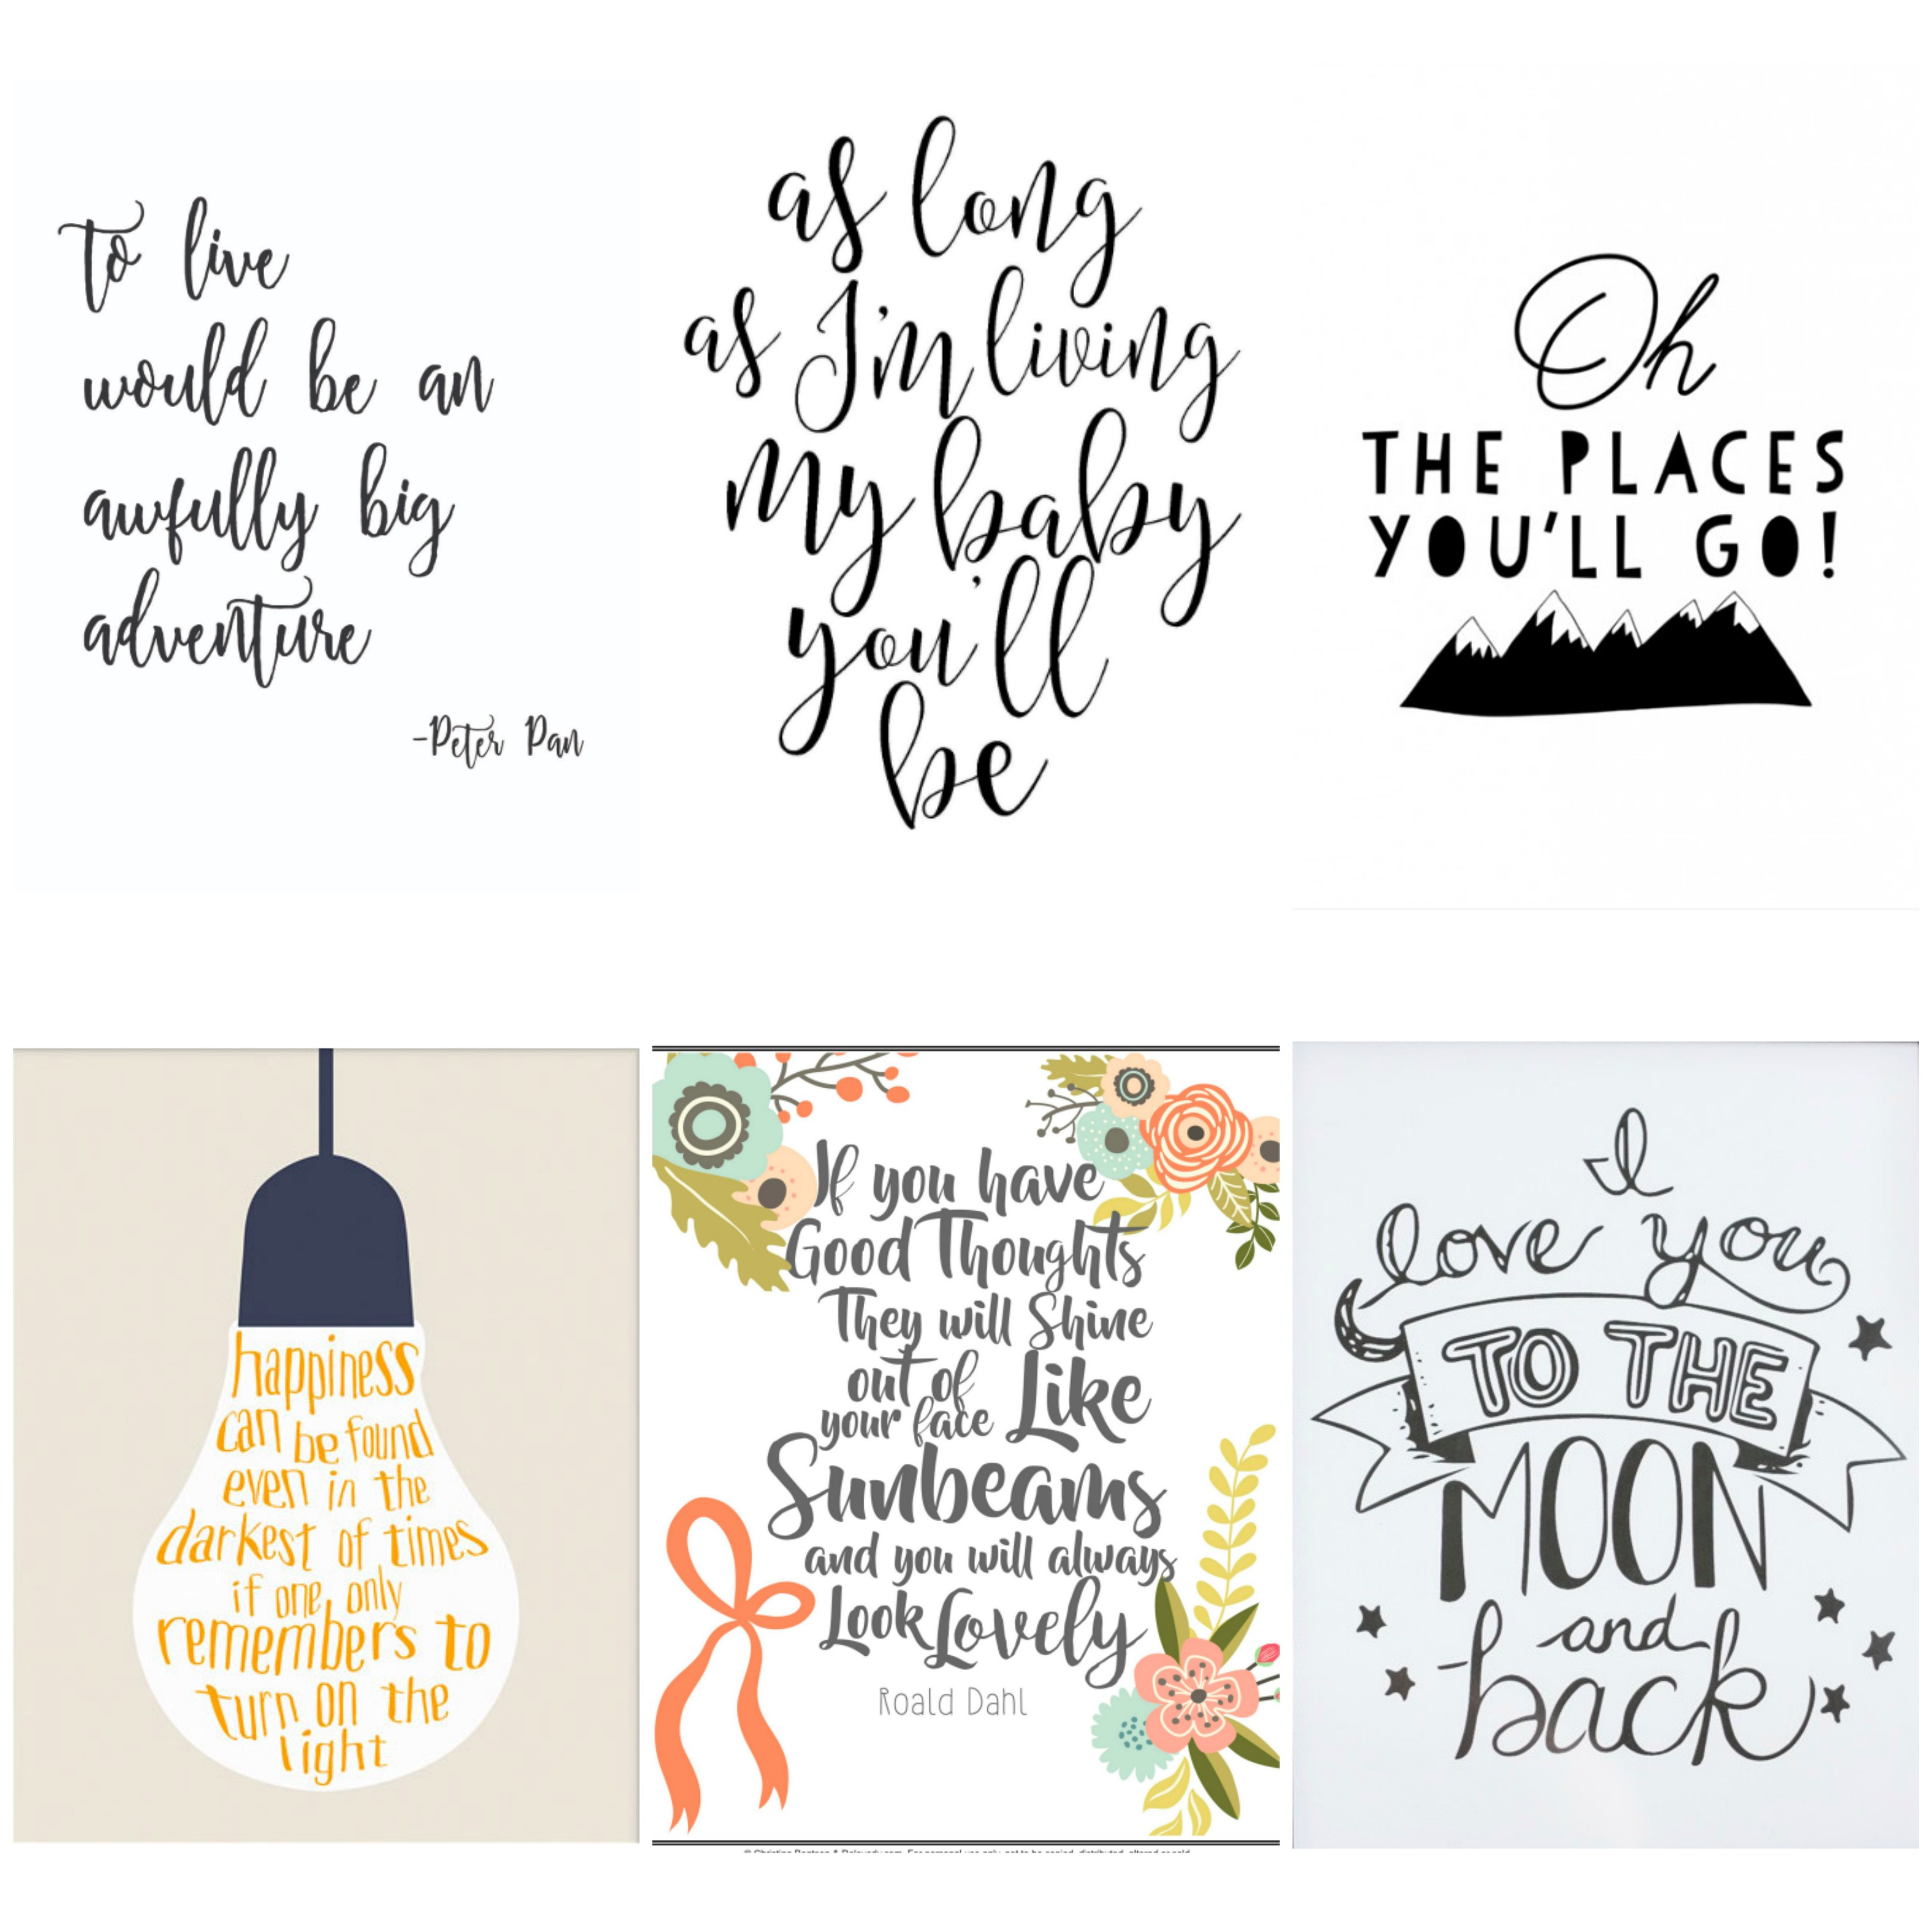 Literature quotes for a child's bedroom. Free printable wall art for kids.